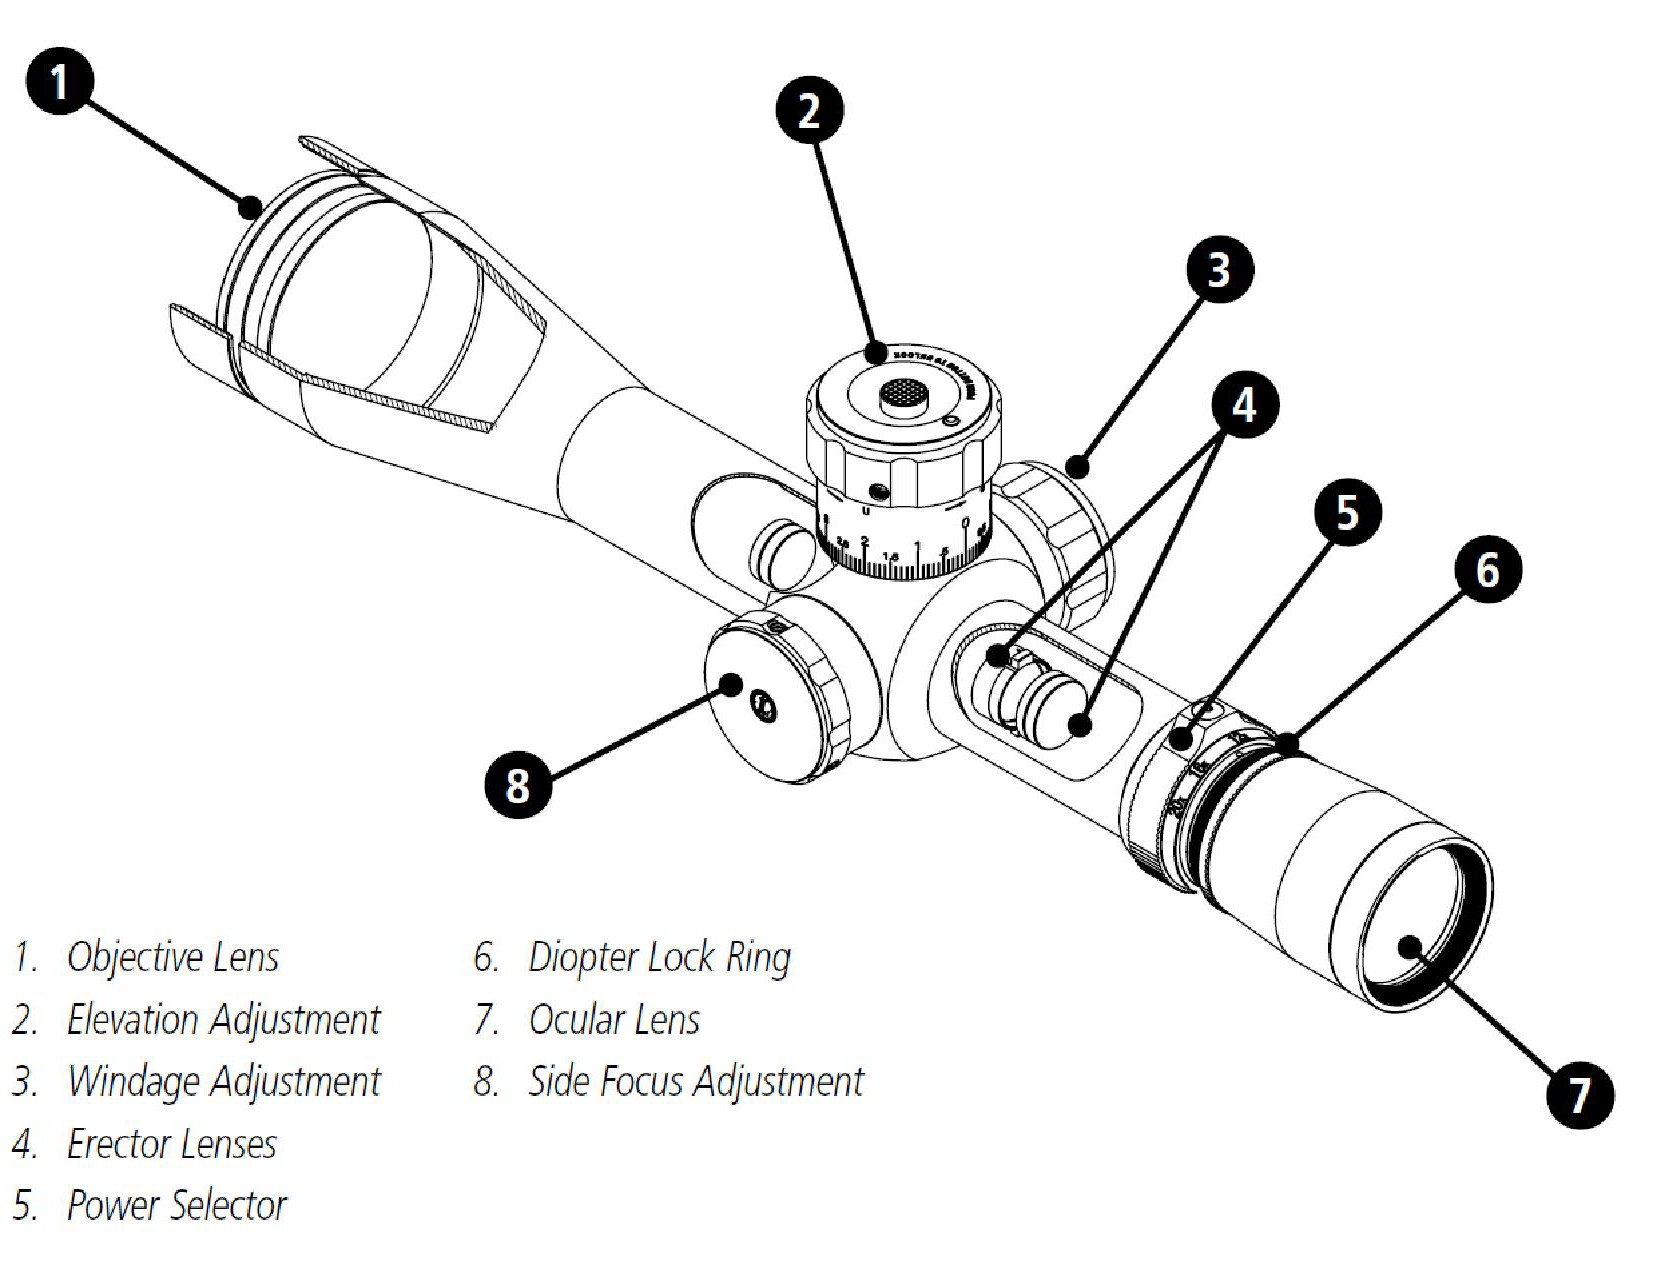 Comprehensive Guide to Rifle Scopes